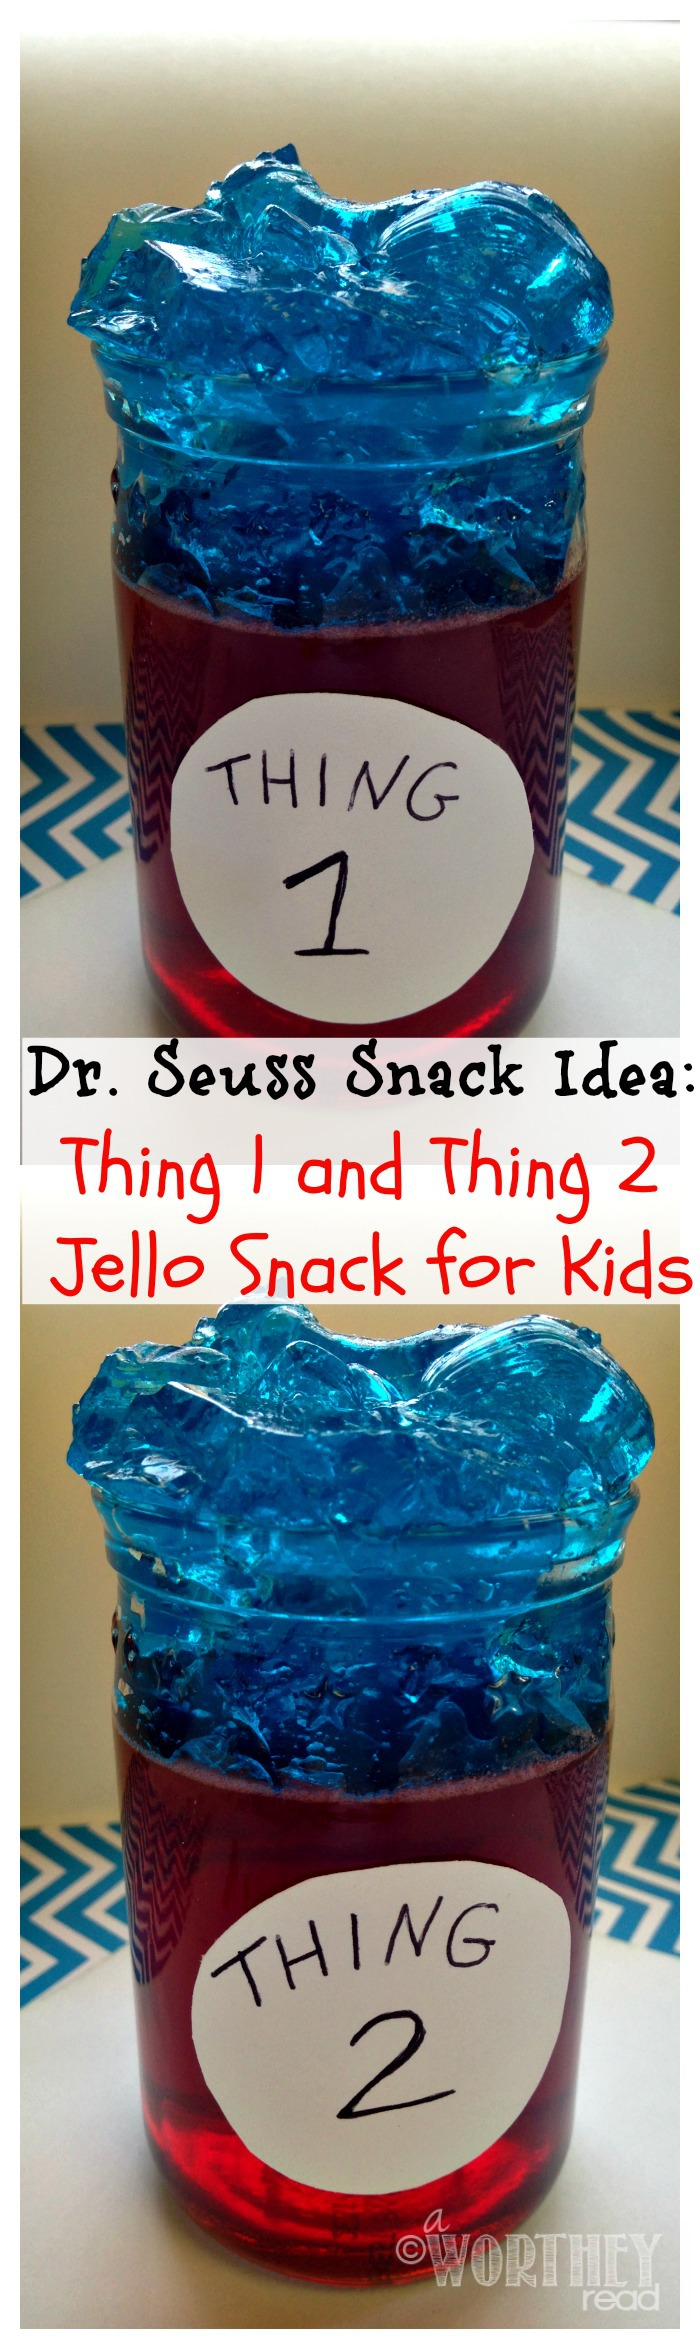 Dr. Seuss Snack Idea Thing 1 and Thing 2 Jello Snack for Kids